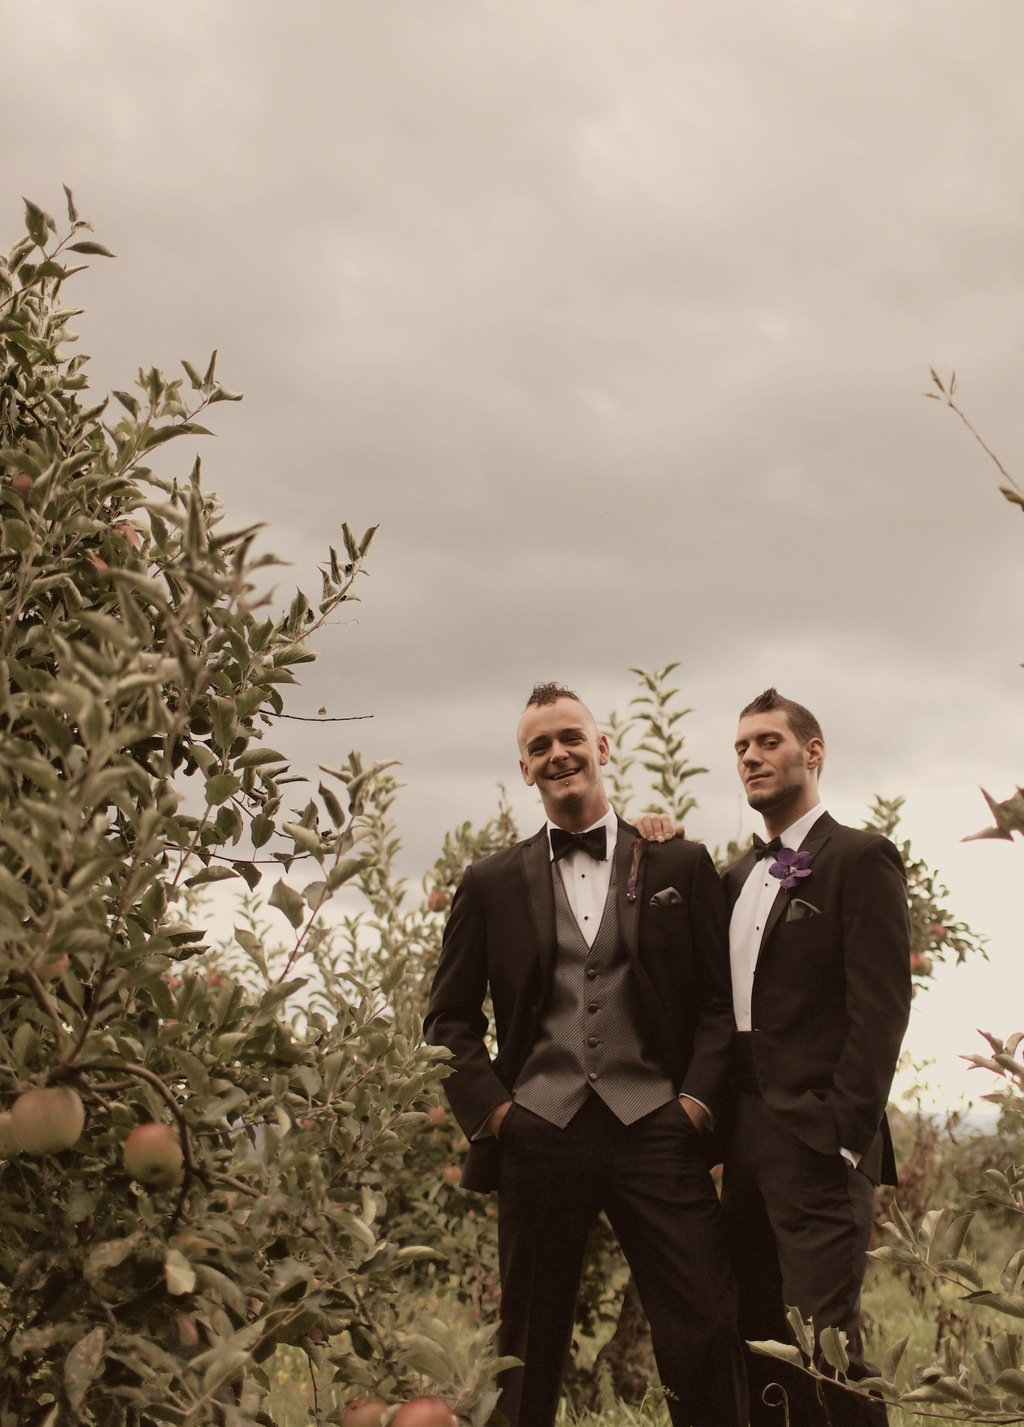 Grooms in fashionable tuxes